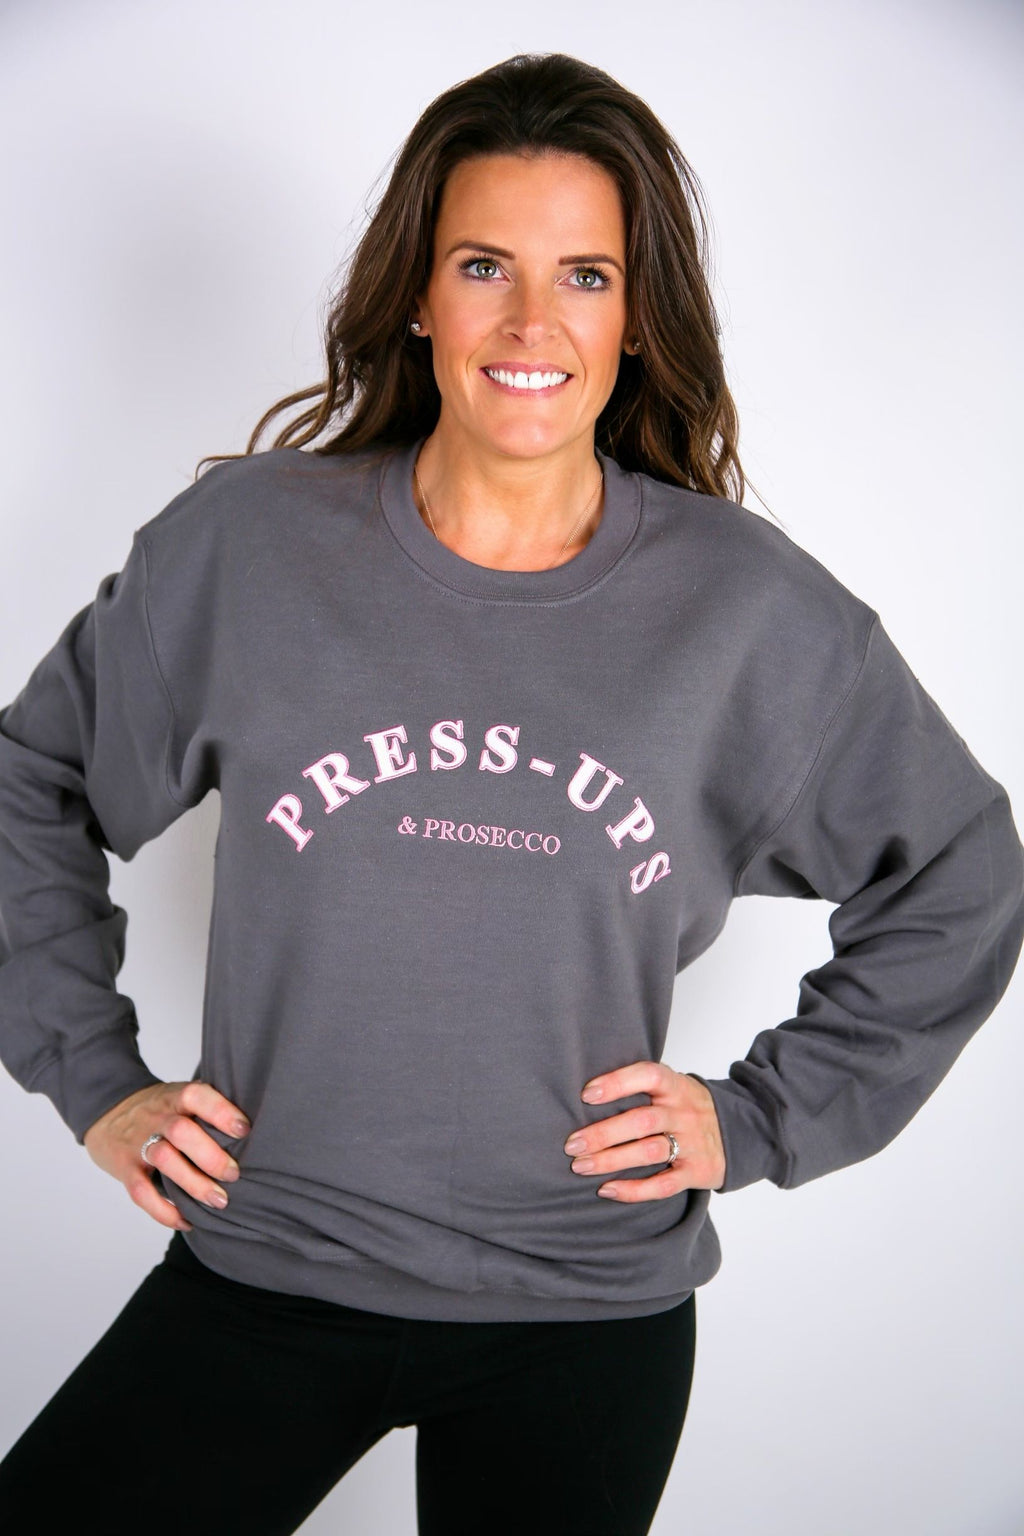 Press Ups & Prosecco Embroidered Sweater - by Bon Bon x